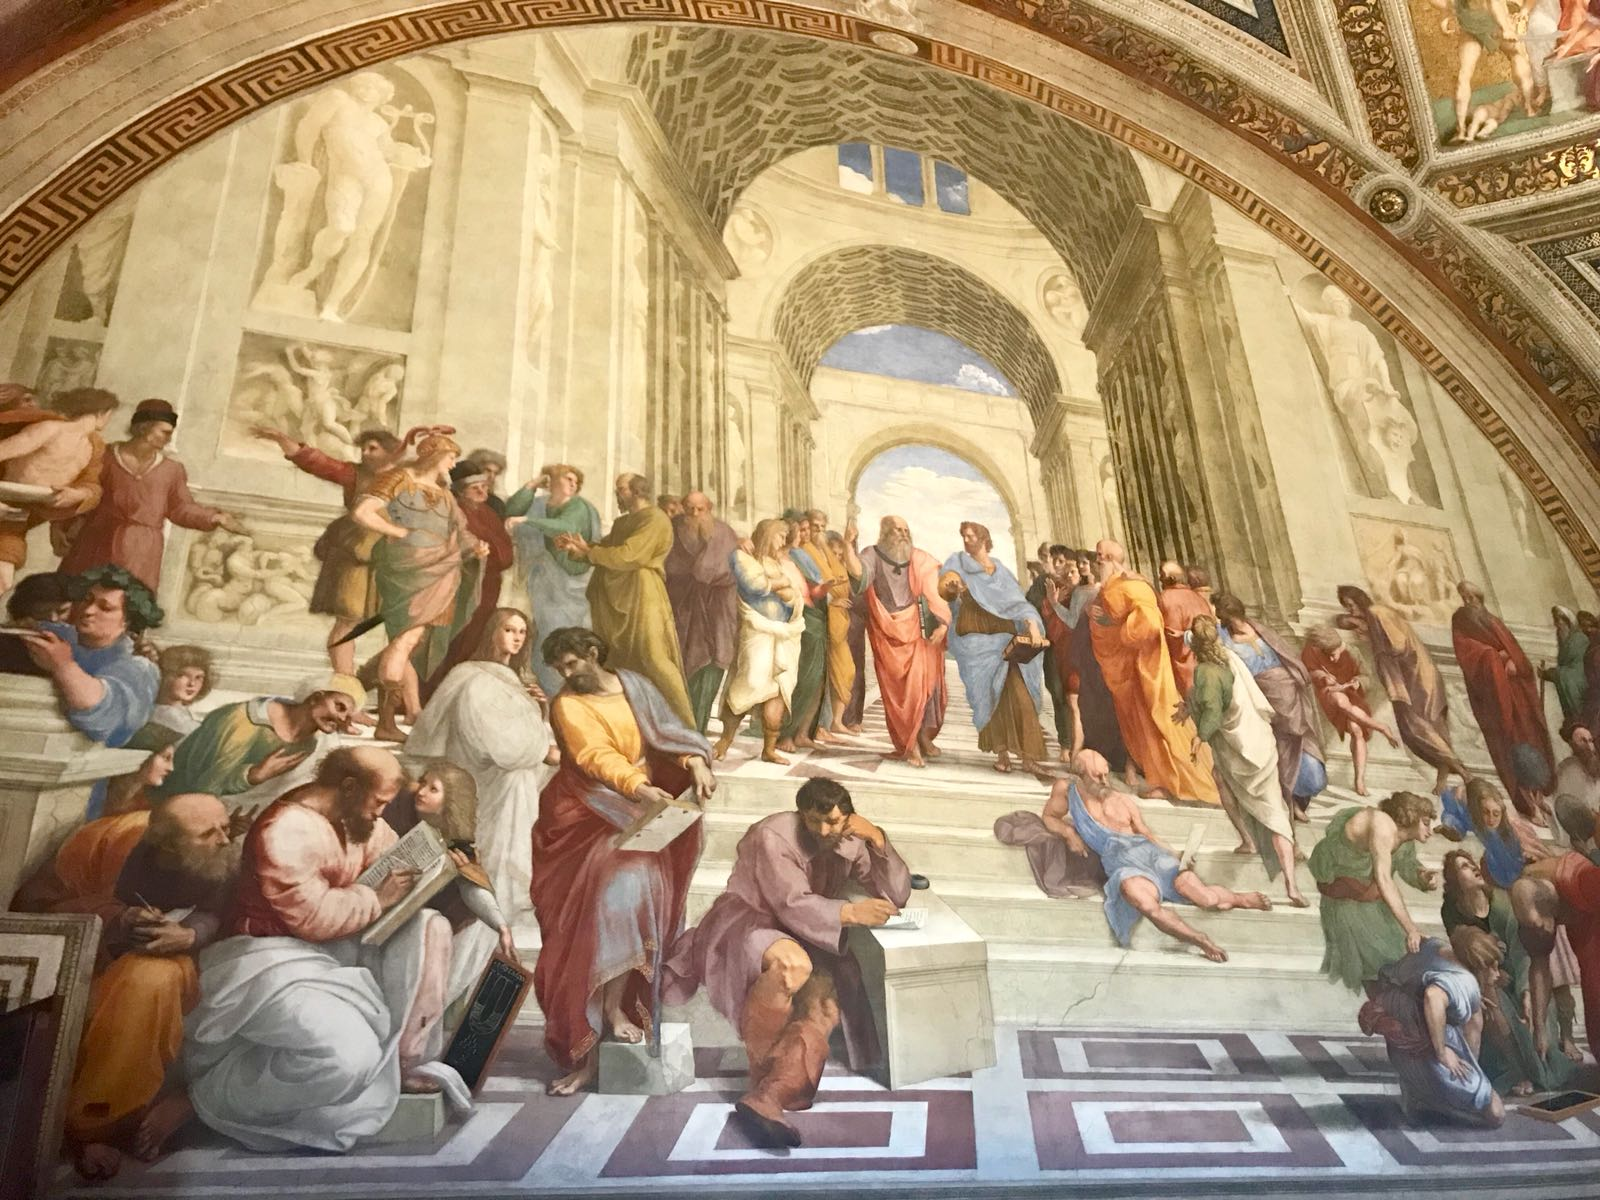 Raphael's 'The school of Athens' fresco from inside the Vatican